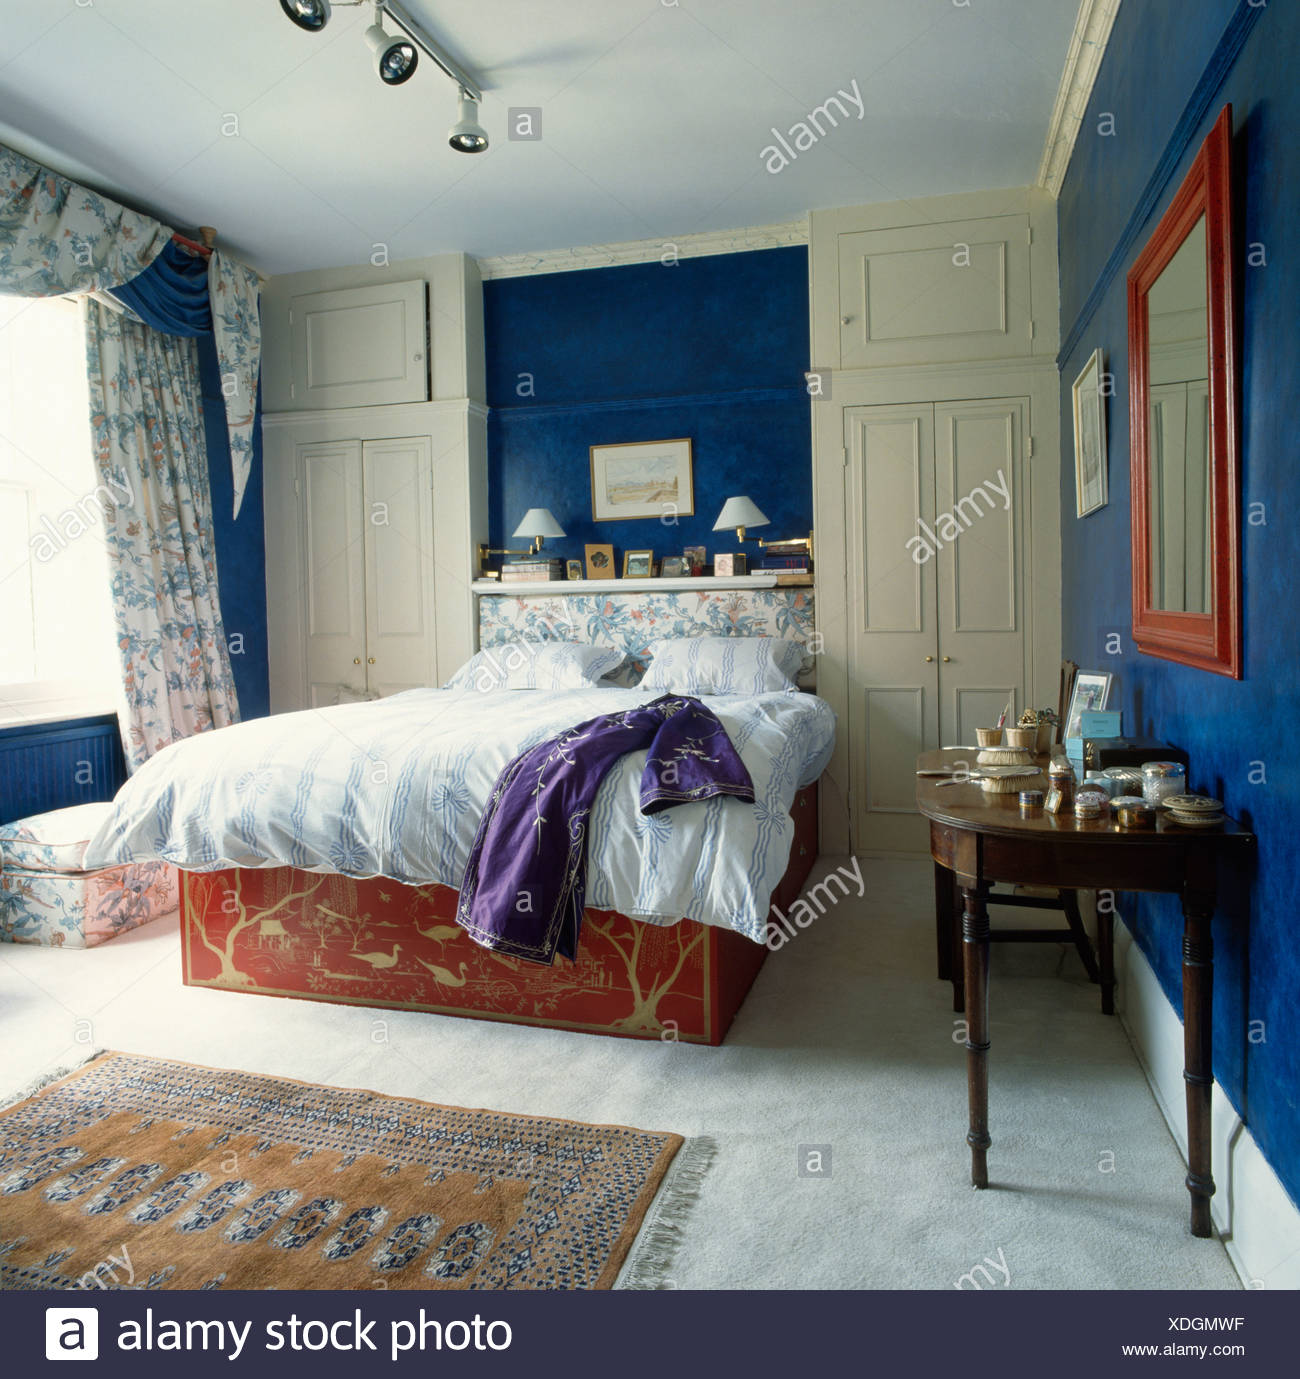 Blue bedroom with grey carpet and wall cupboards Stock Photo ...